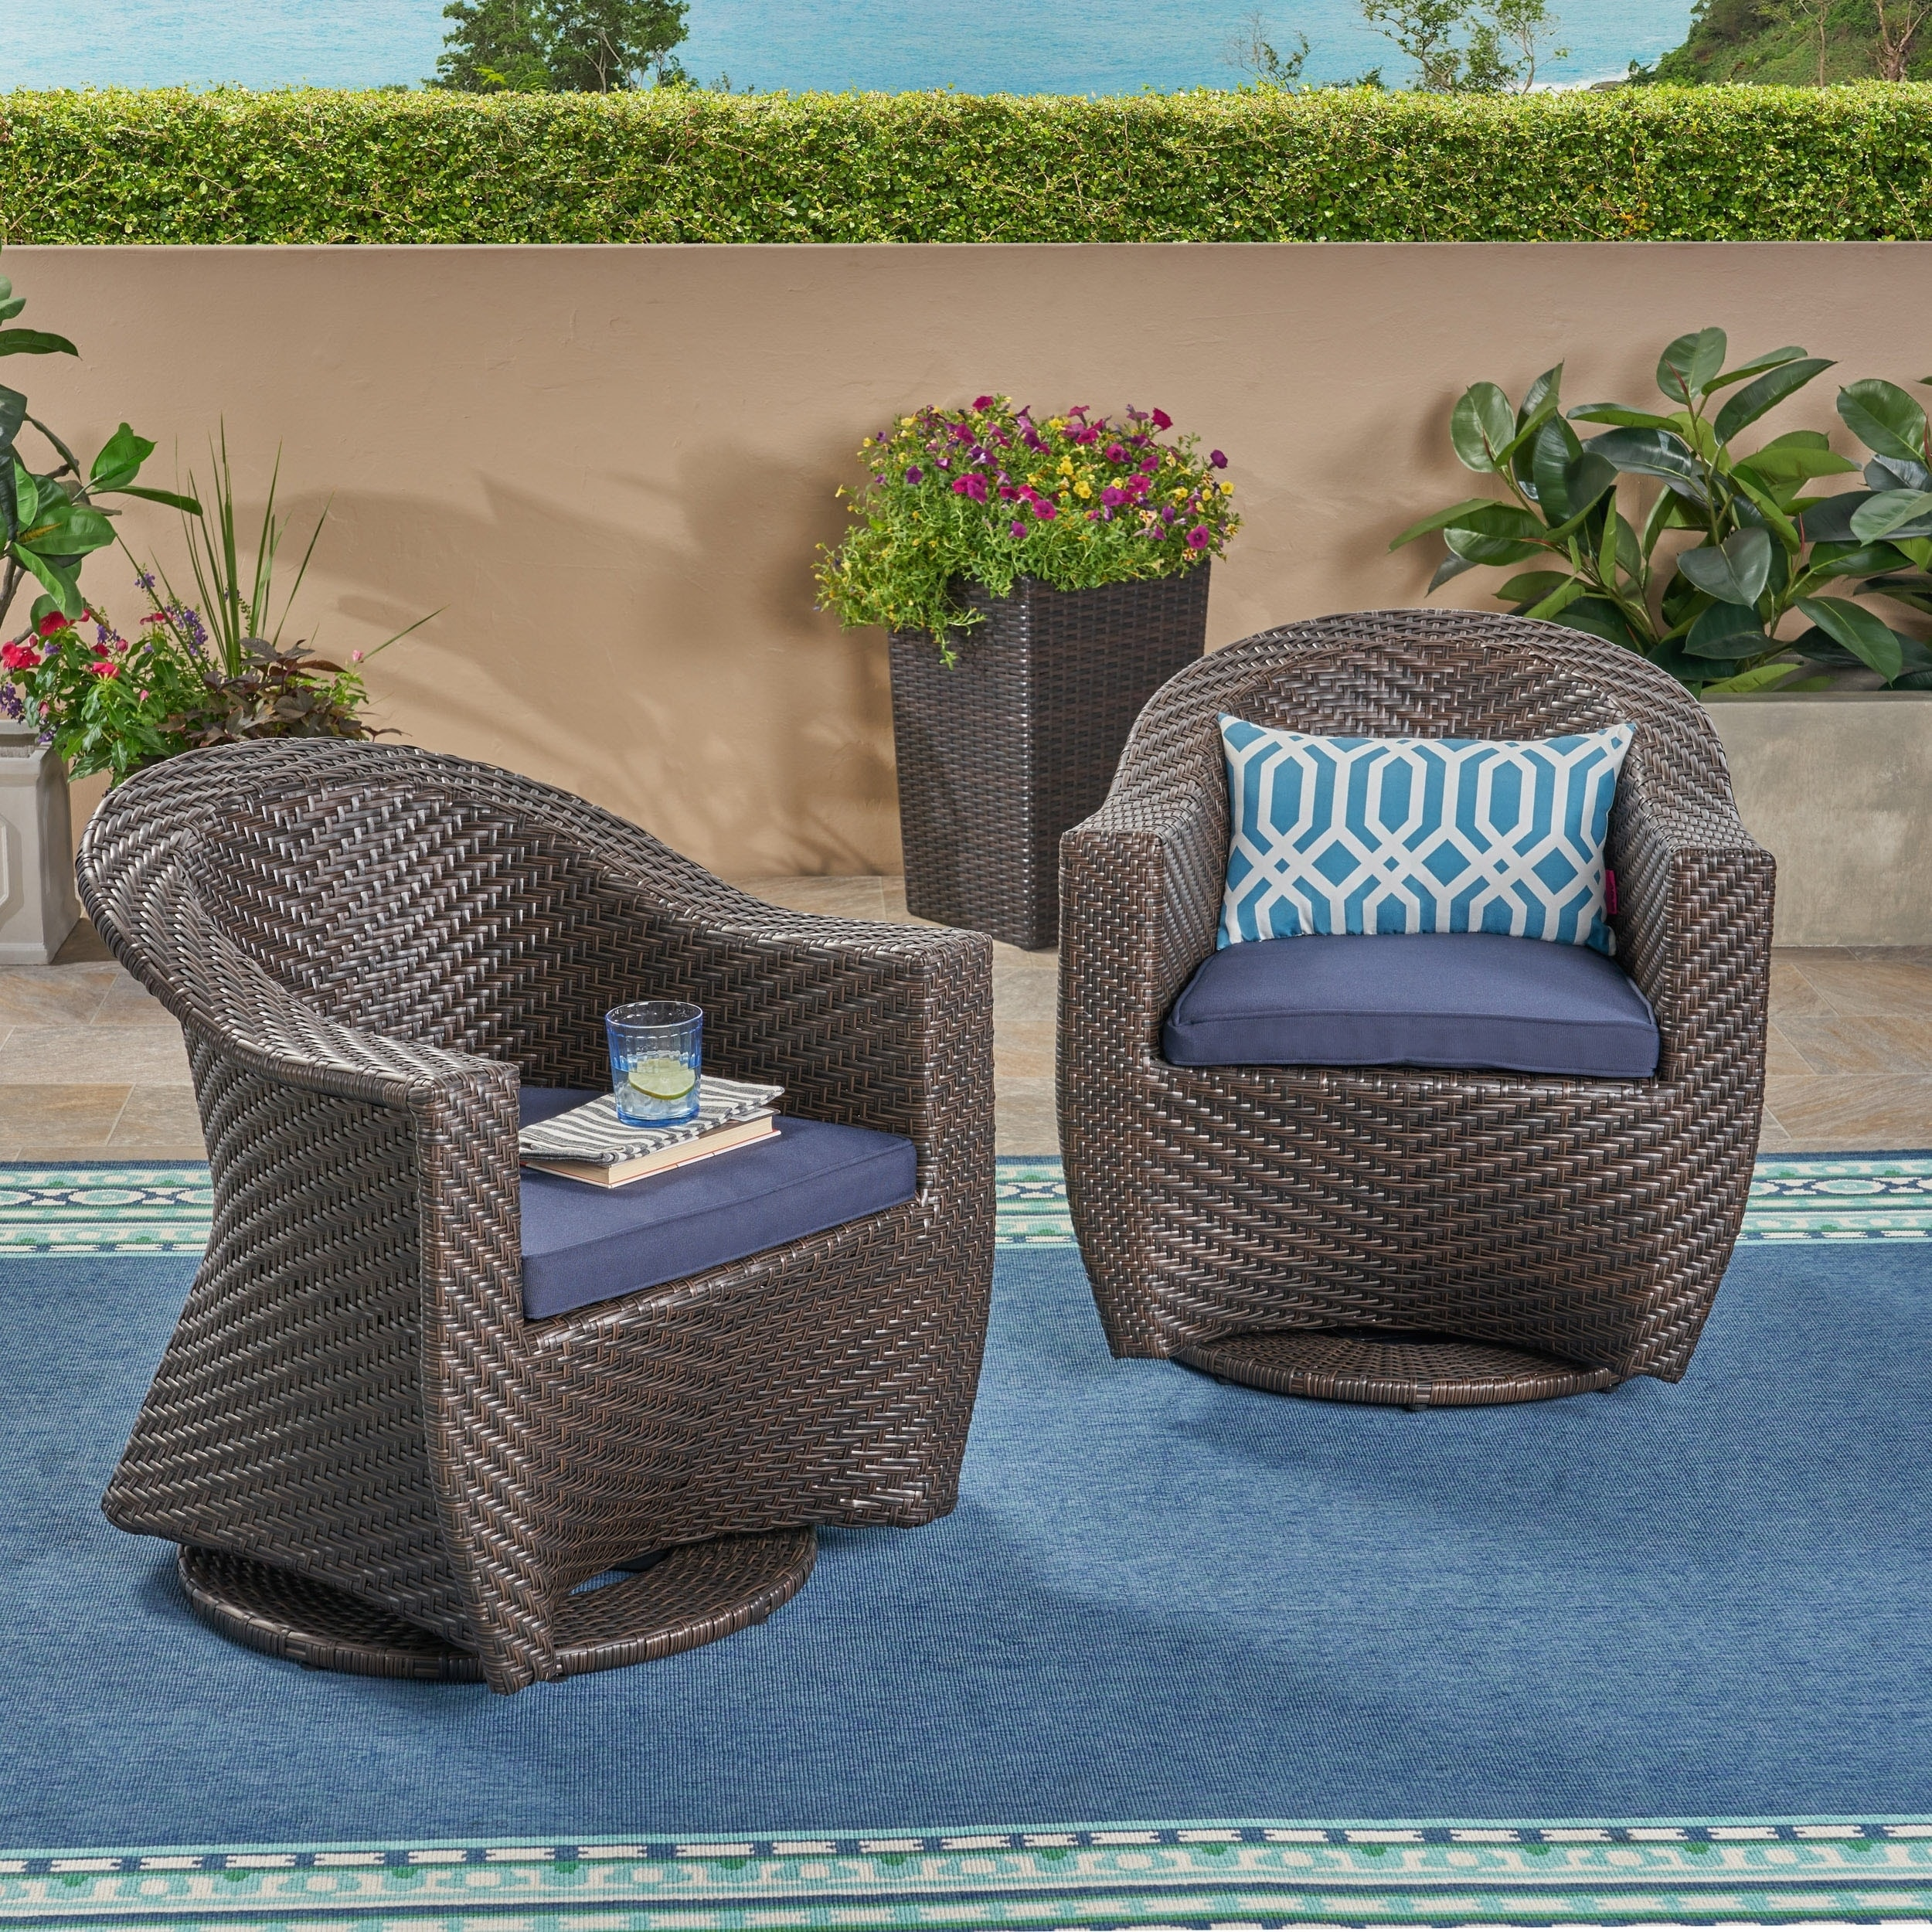 Shop For Larchmont Outdoor Wicker Swivel Chair With Outdoor Cushions Set Of 2 By Christopher Knight Home Get Free Delivery On Everything At Overstock Your Online Garden Patio Shop Get 5 In Rewards With Club O 23579419